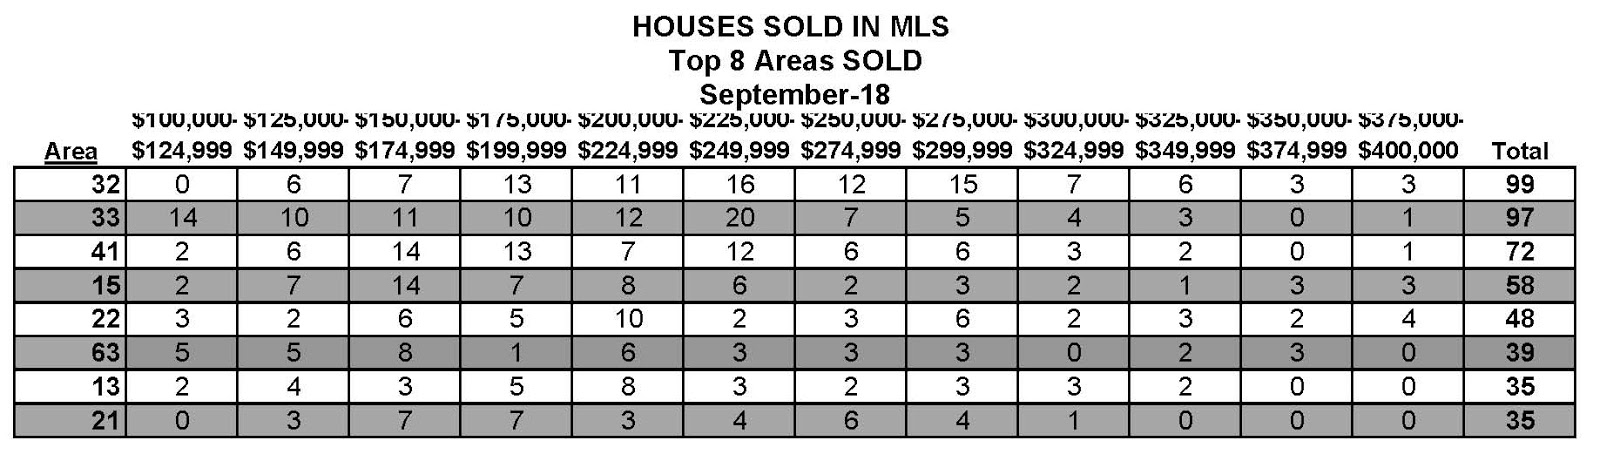 top 8 areas sold in greenville sc